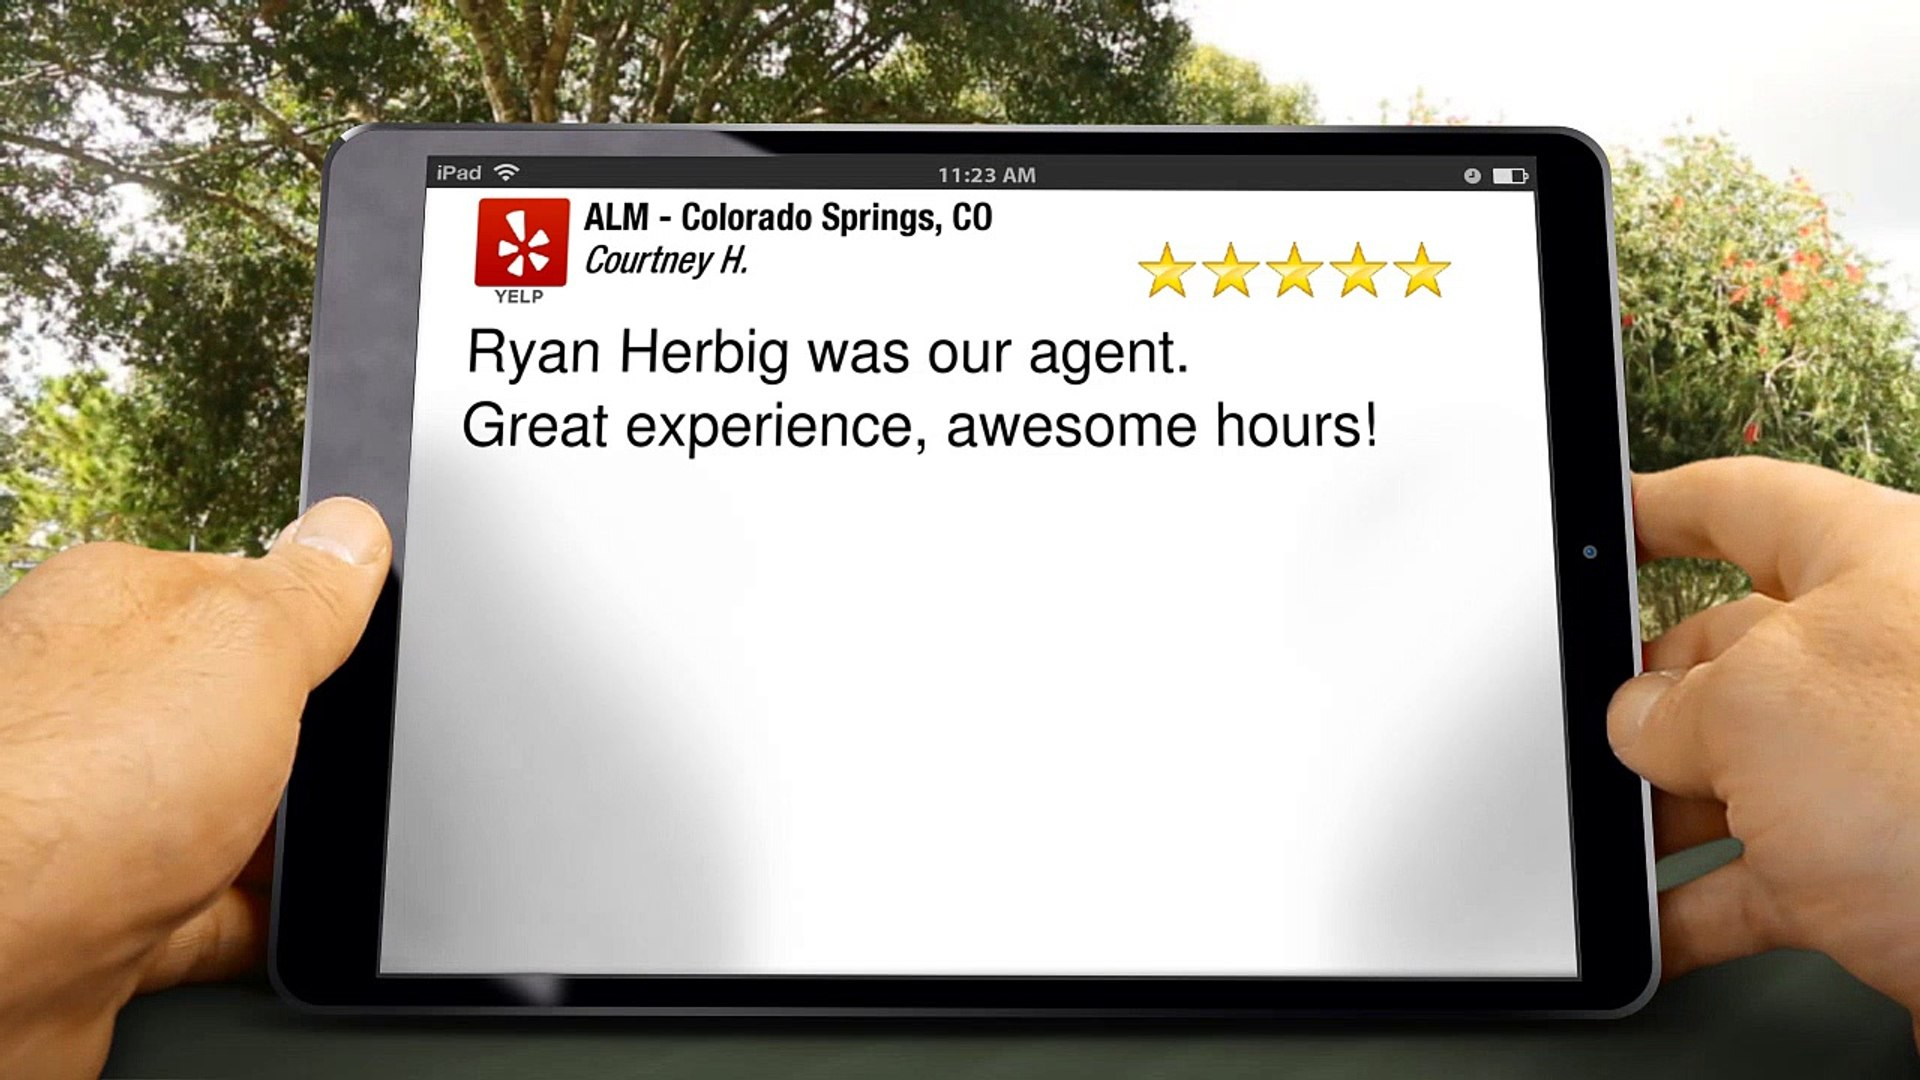 ALM - Colorado Springs, CO Colorado Springs         Excellent         5 Star Review by Courtney H.